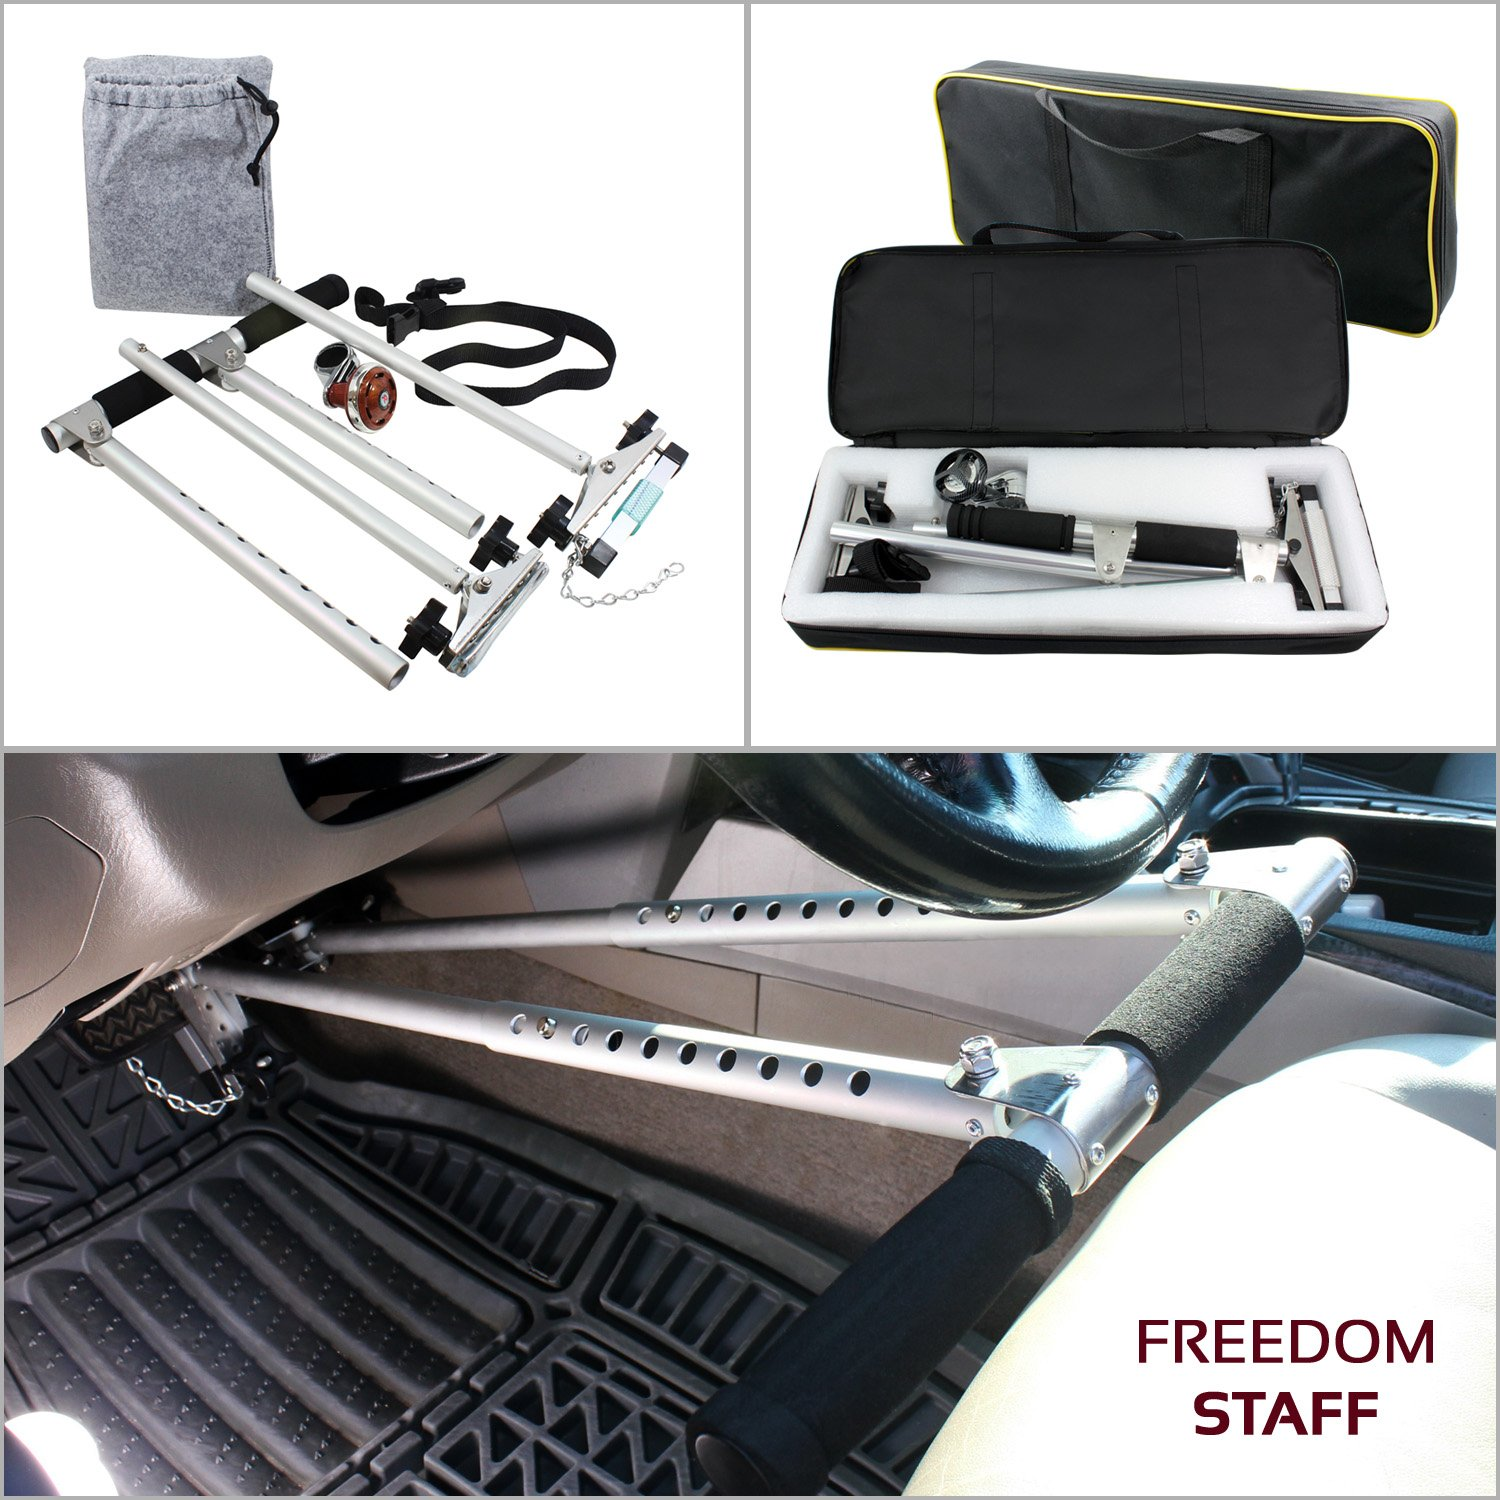 Amazon.com: Freedom Staff 2.0 Handicap Driving Hand Controls ...